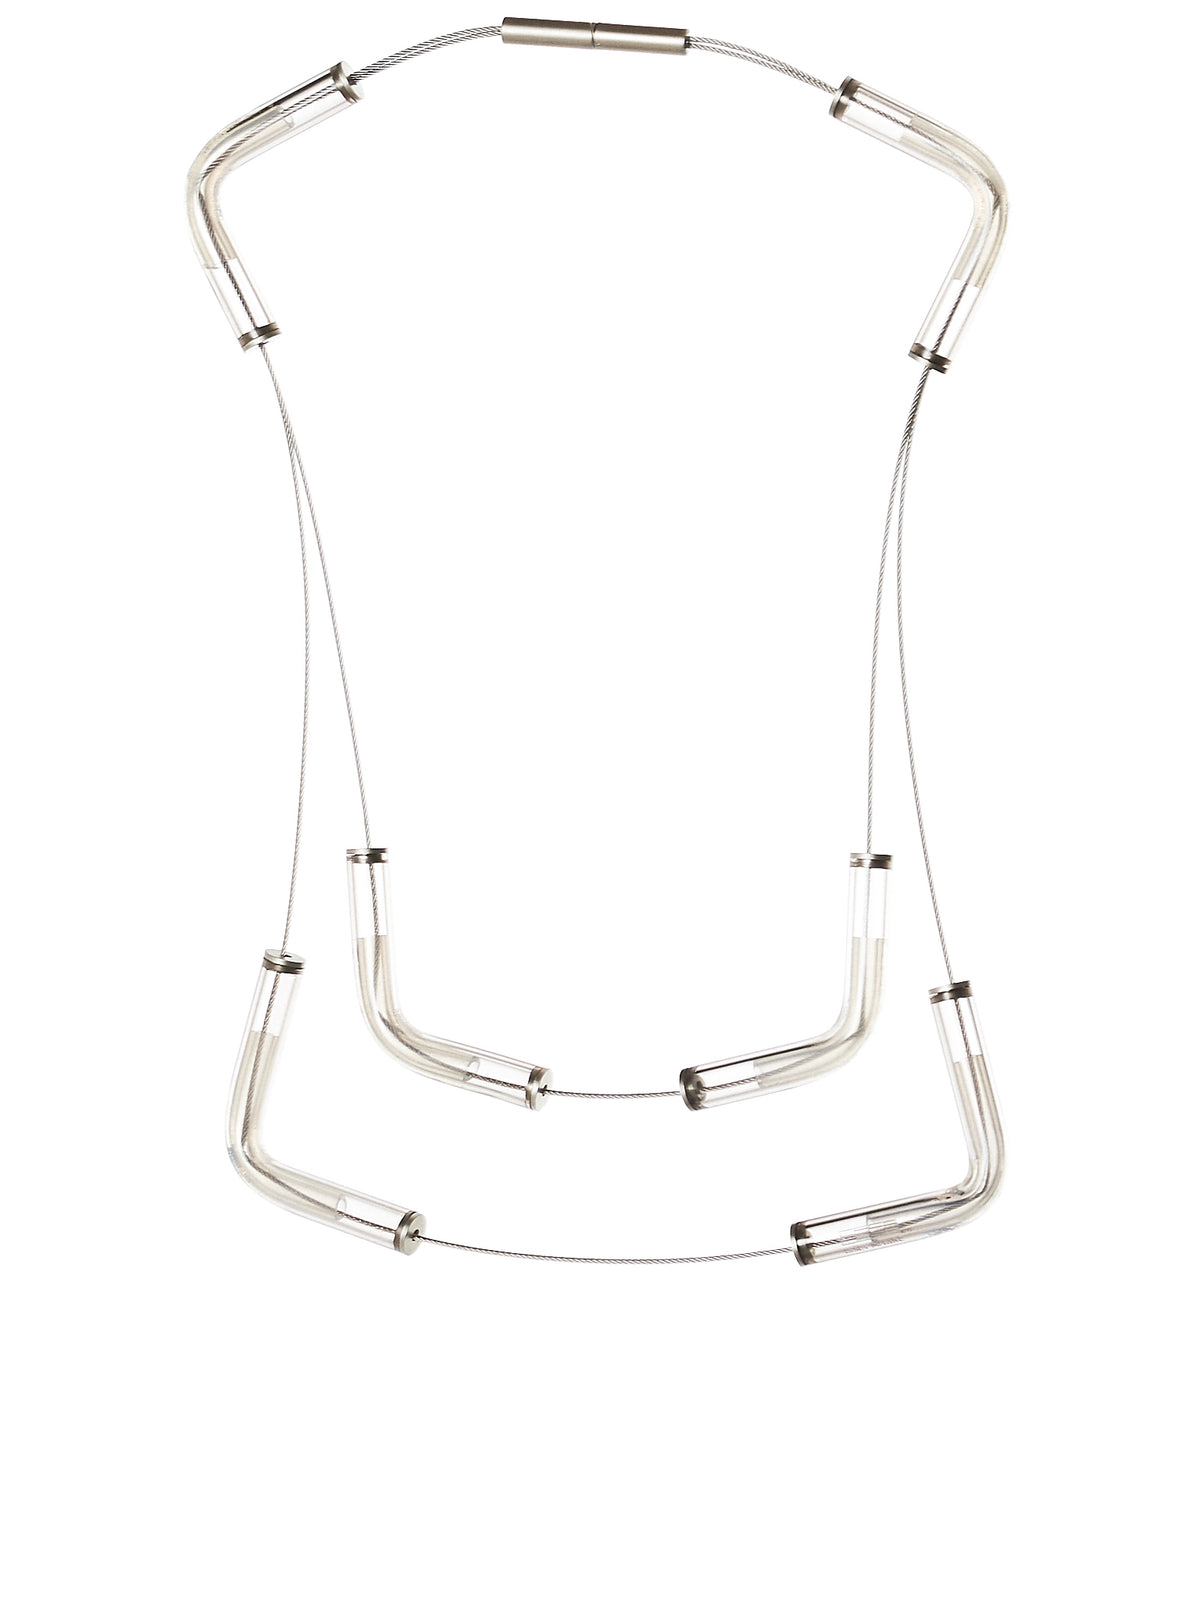 Capsuled Cord Necklace (IL86AK214-12)